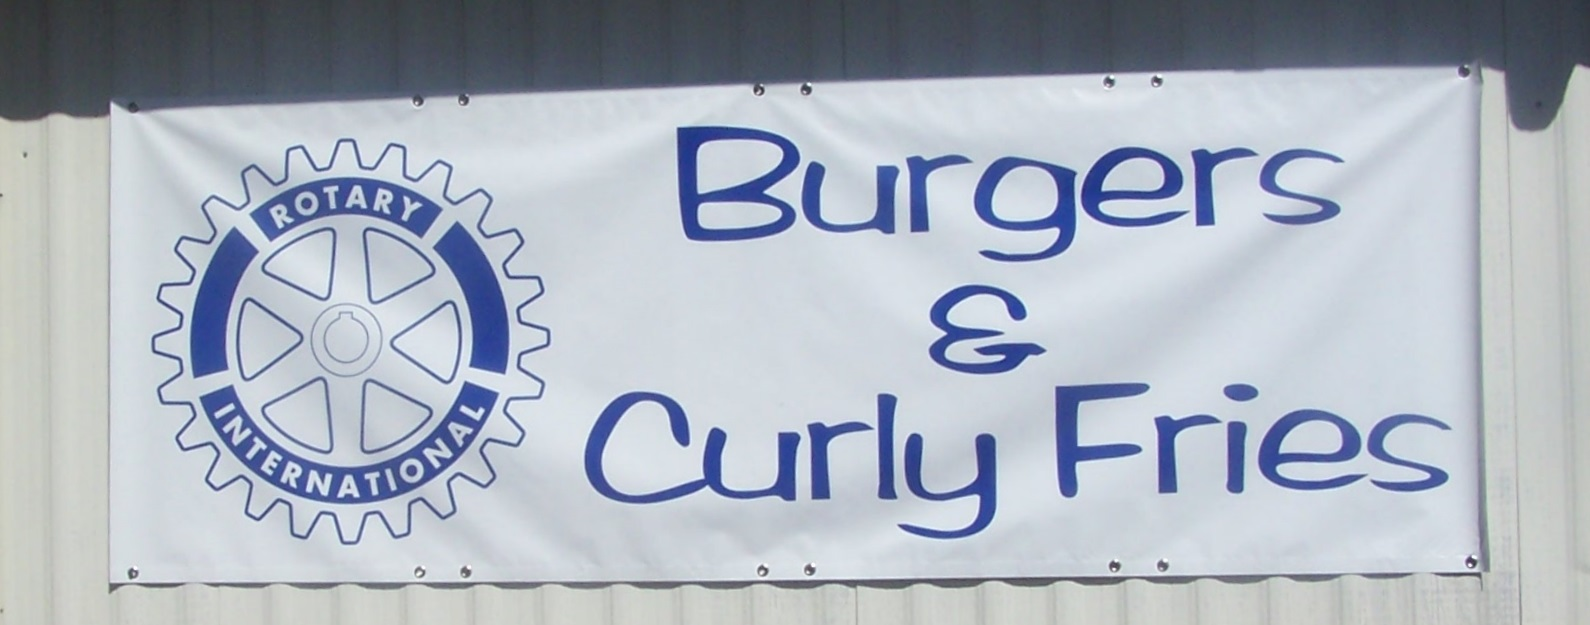 Burgers & Curly Fries Banner by Bason Signs